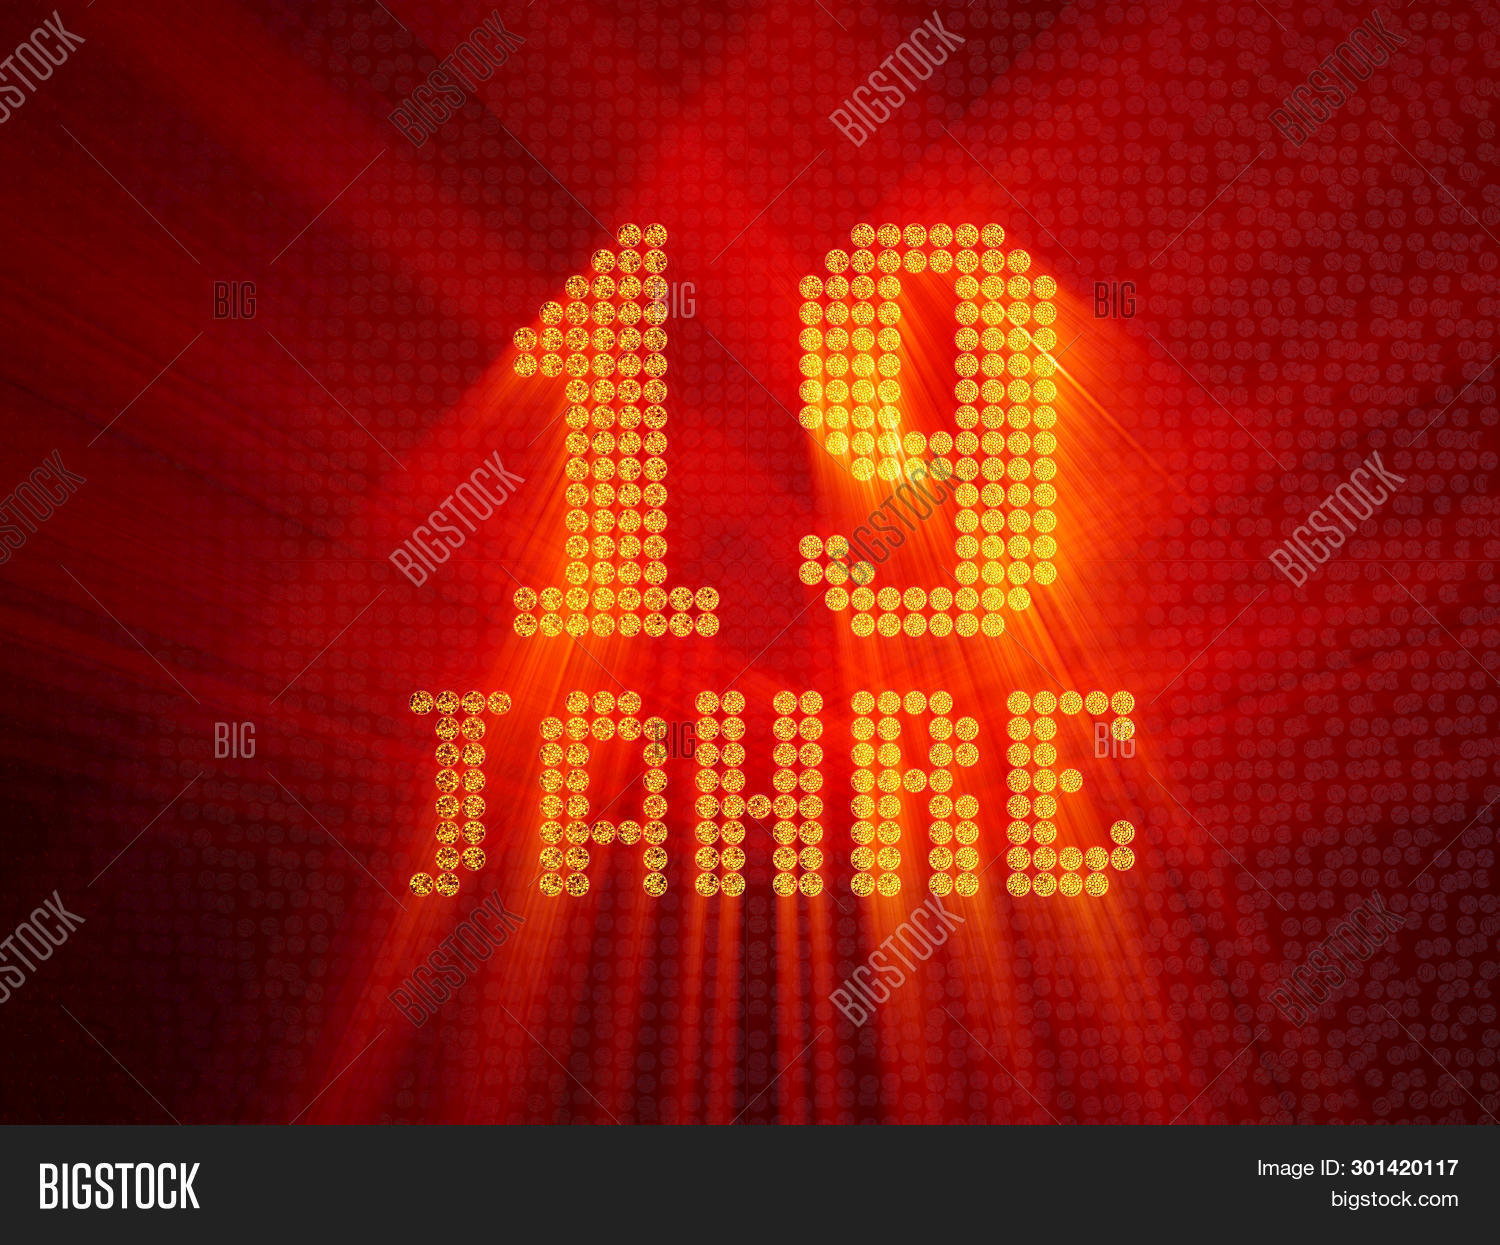 3D,German,achievement,age,anniversary,award,background,banner,birthday,business,card,celebrate,celebrating,celebration,ceremony,certificate,champion,collection,congratulation,decoration,design,element,emblem,event,glow,gold,golden,graduation,holiday,icon,illustration,invitation,isolated,jubilee,label,letter,nineteen,number,party,retro,shine,shiny,sign,success,symbol,tradition,wedding,white,winner,year